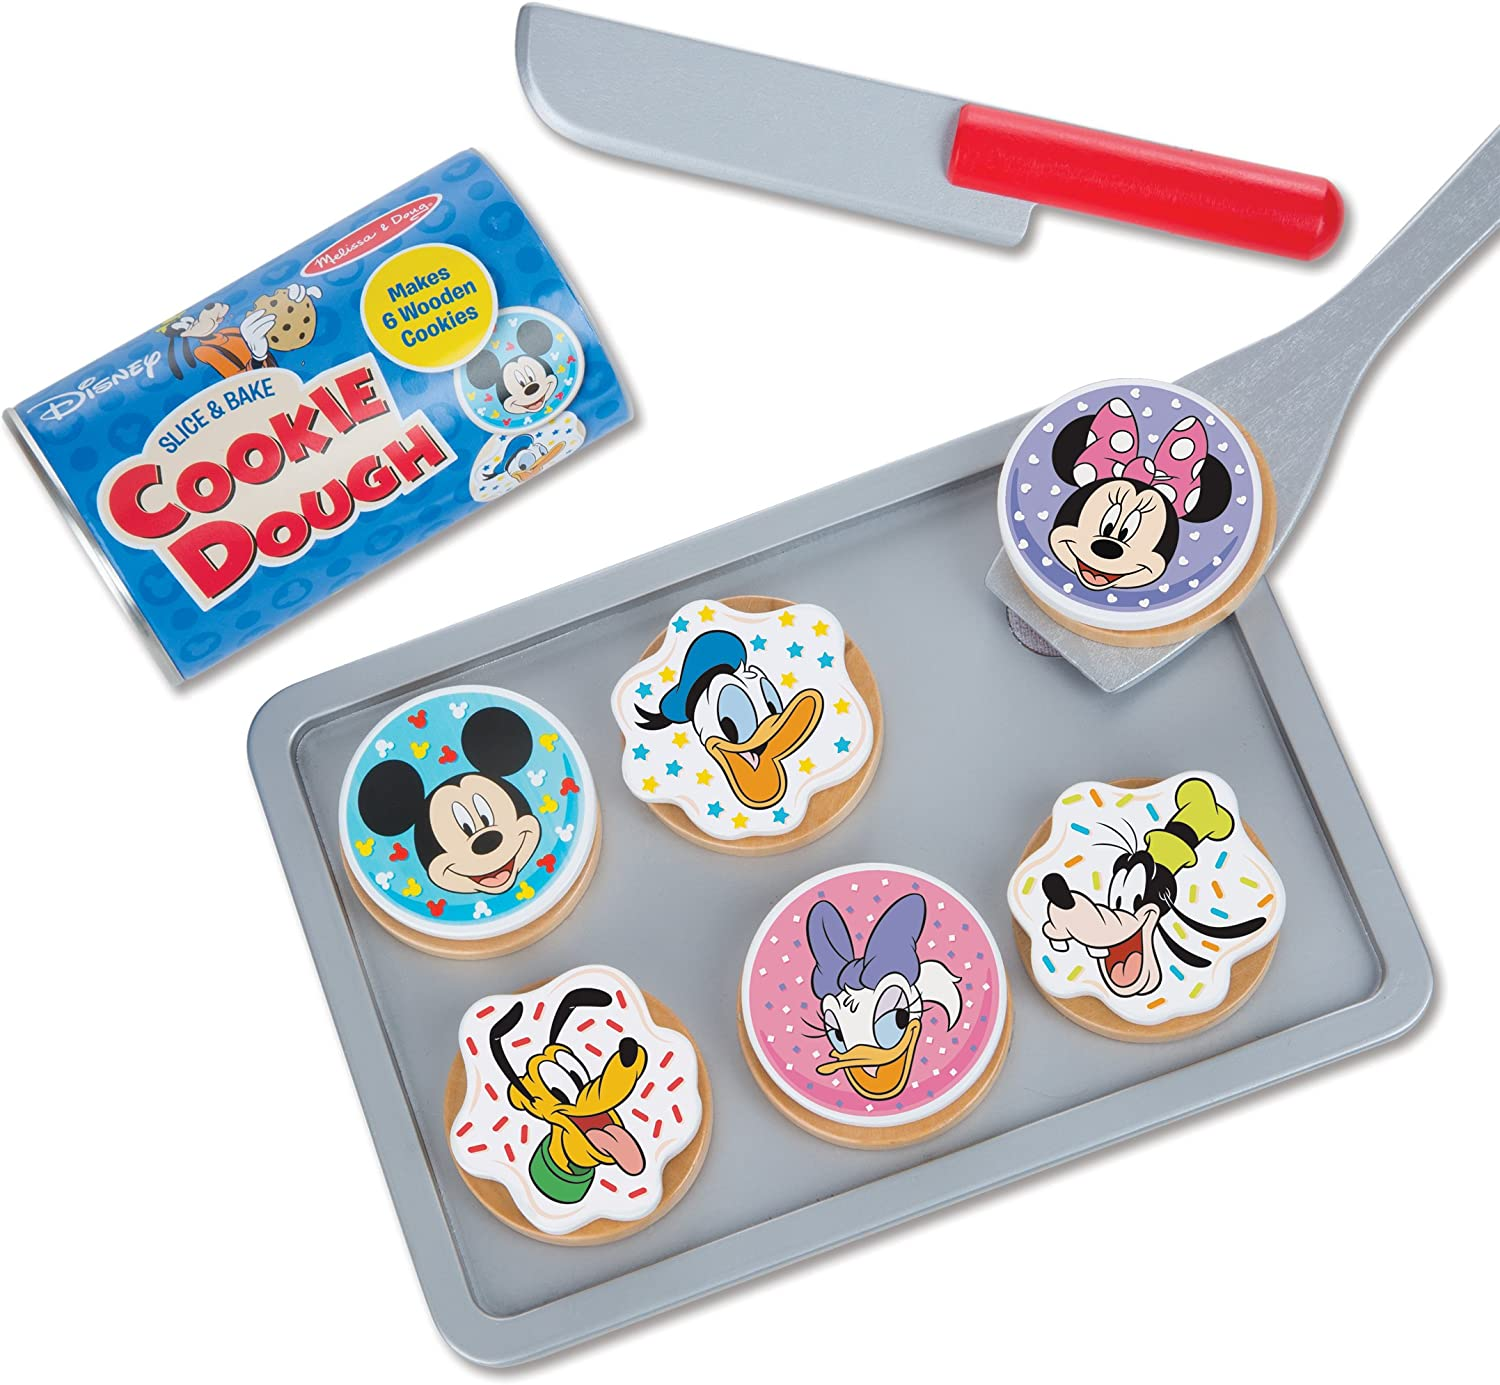 Melissa & Doug Disney Mickey Mouse Wooden Slice and Bake Cookie Set (16 pcs) - Wooden Play Food